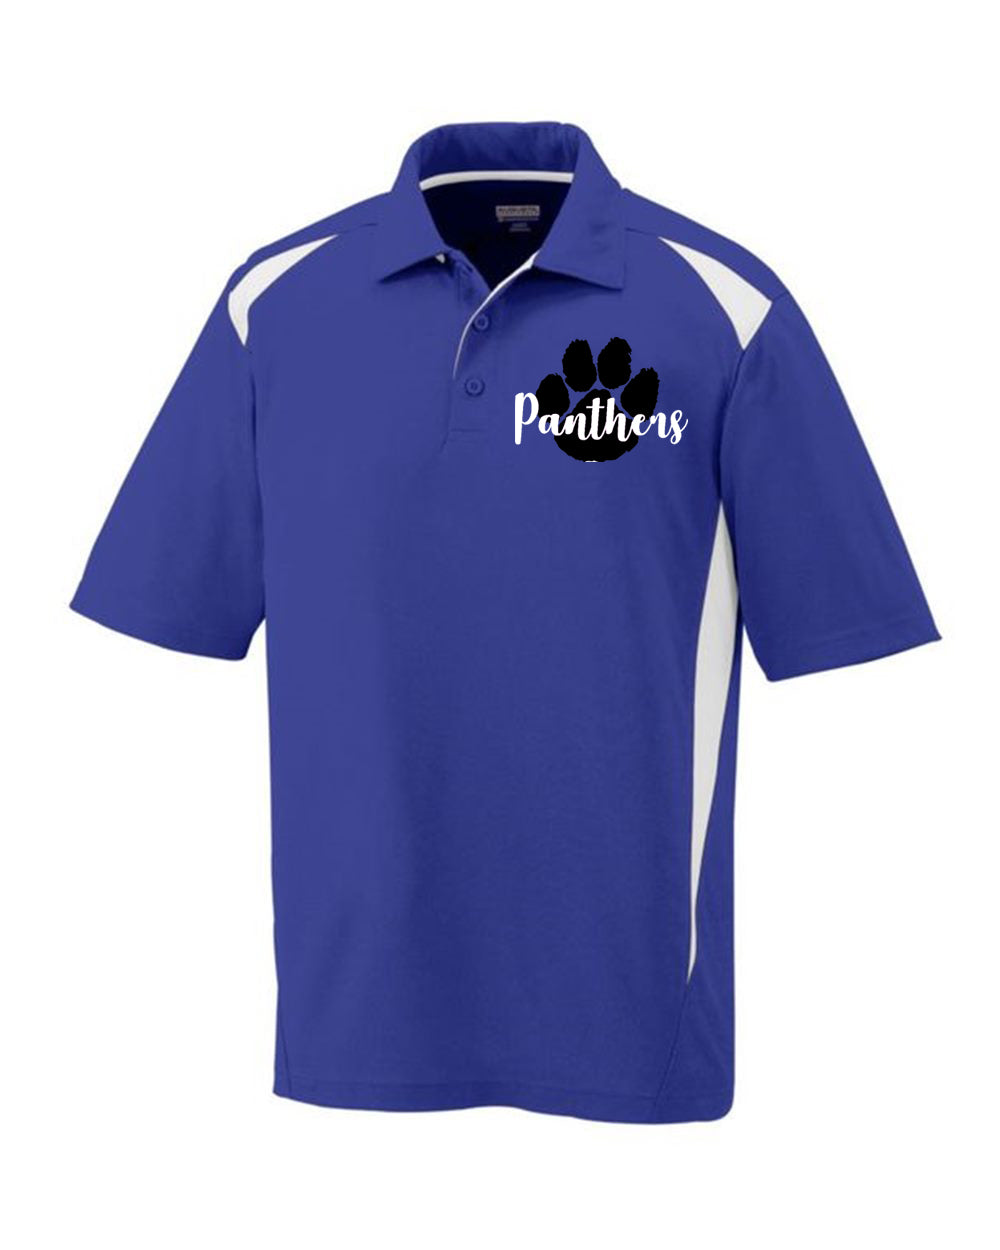 ANDOVER Augusta Sportswear - Two-Tone Premier Sport Shirt - 5012